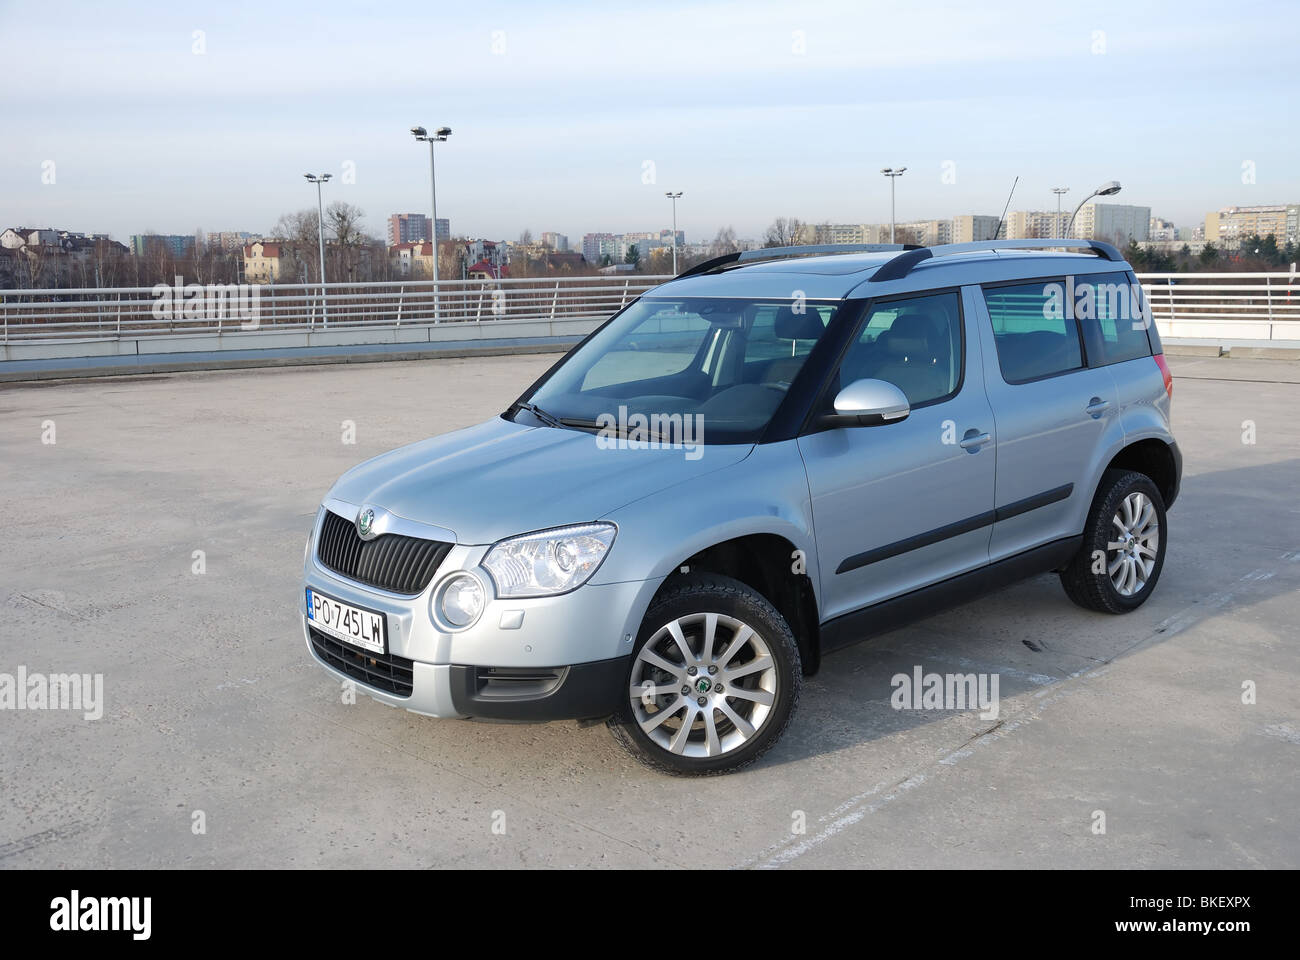 Skoda Yeti 2 0 Tdi 4x4 2009 Aqua Light Blue Metallic Five Doors Stock Photo Alamy